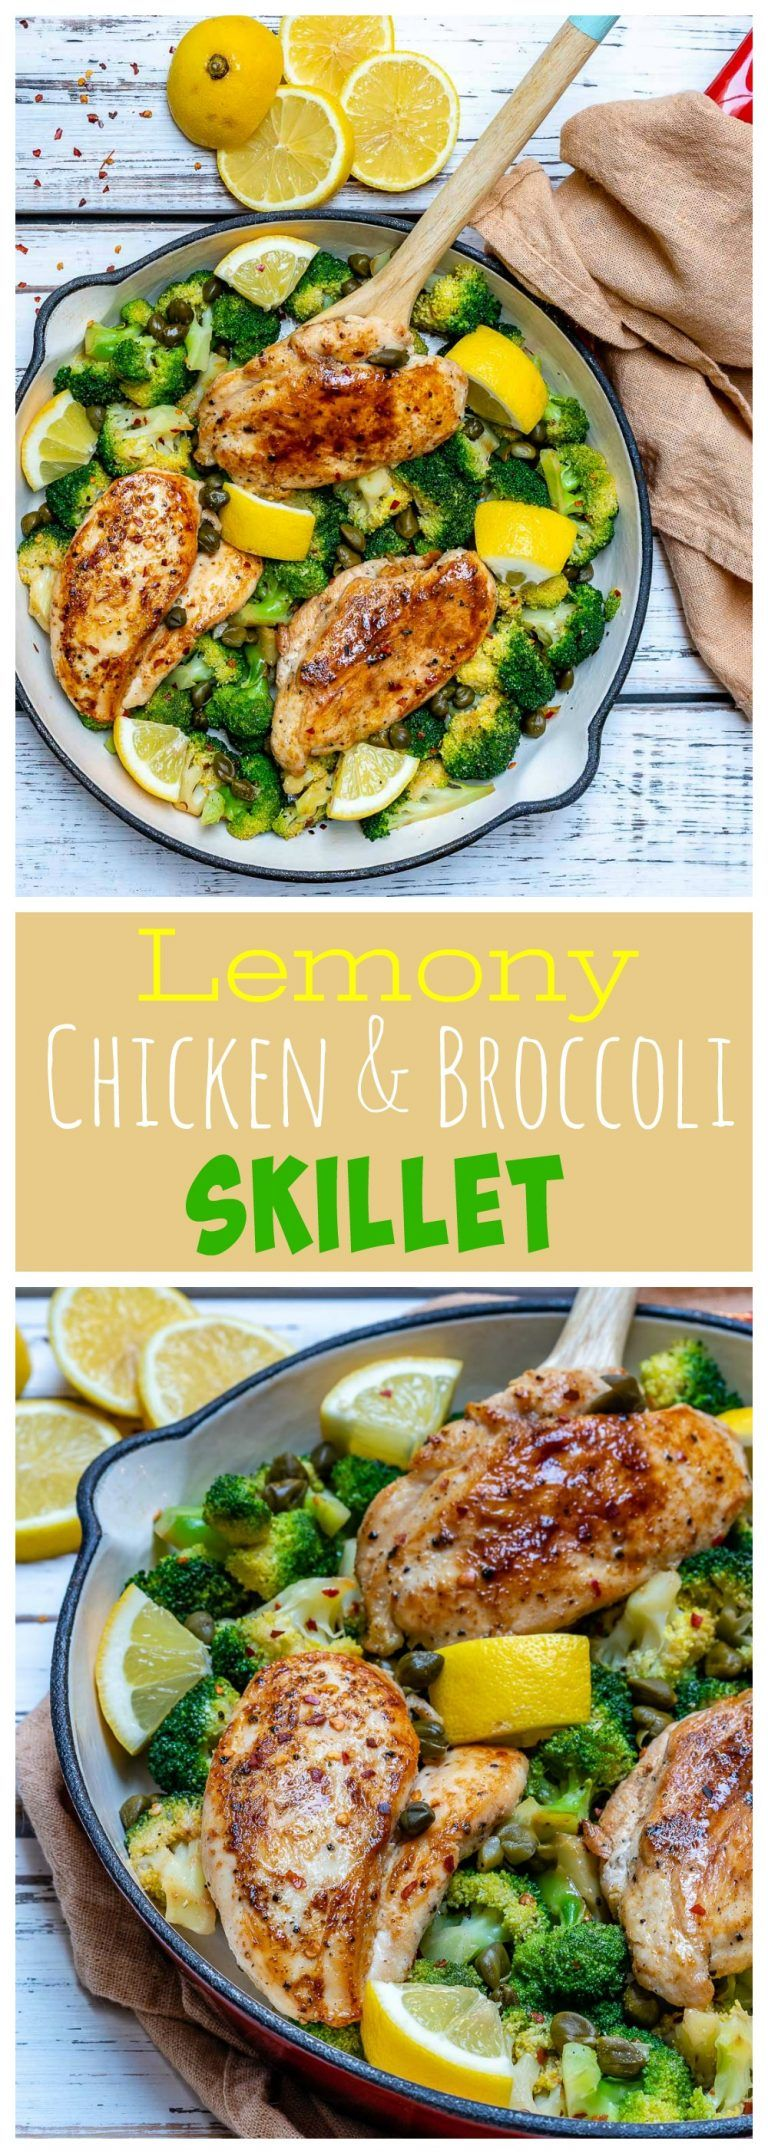 Lemony Chicken + Broccoli Skillet Meal #cleaneating